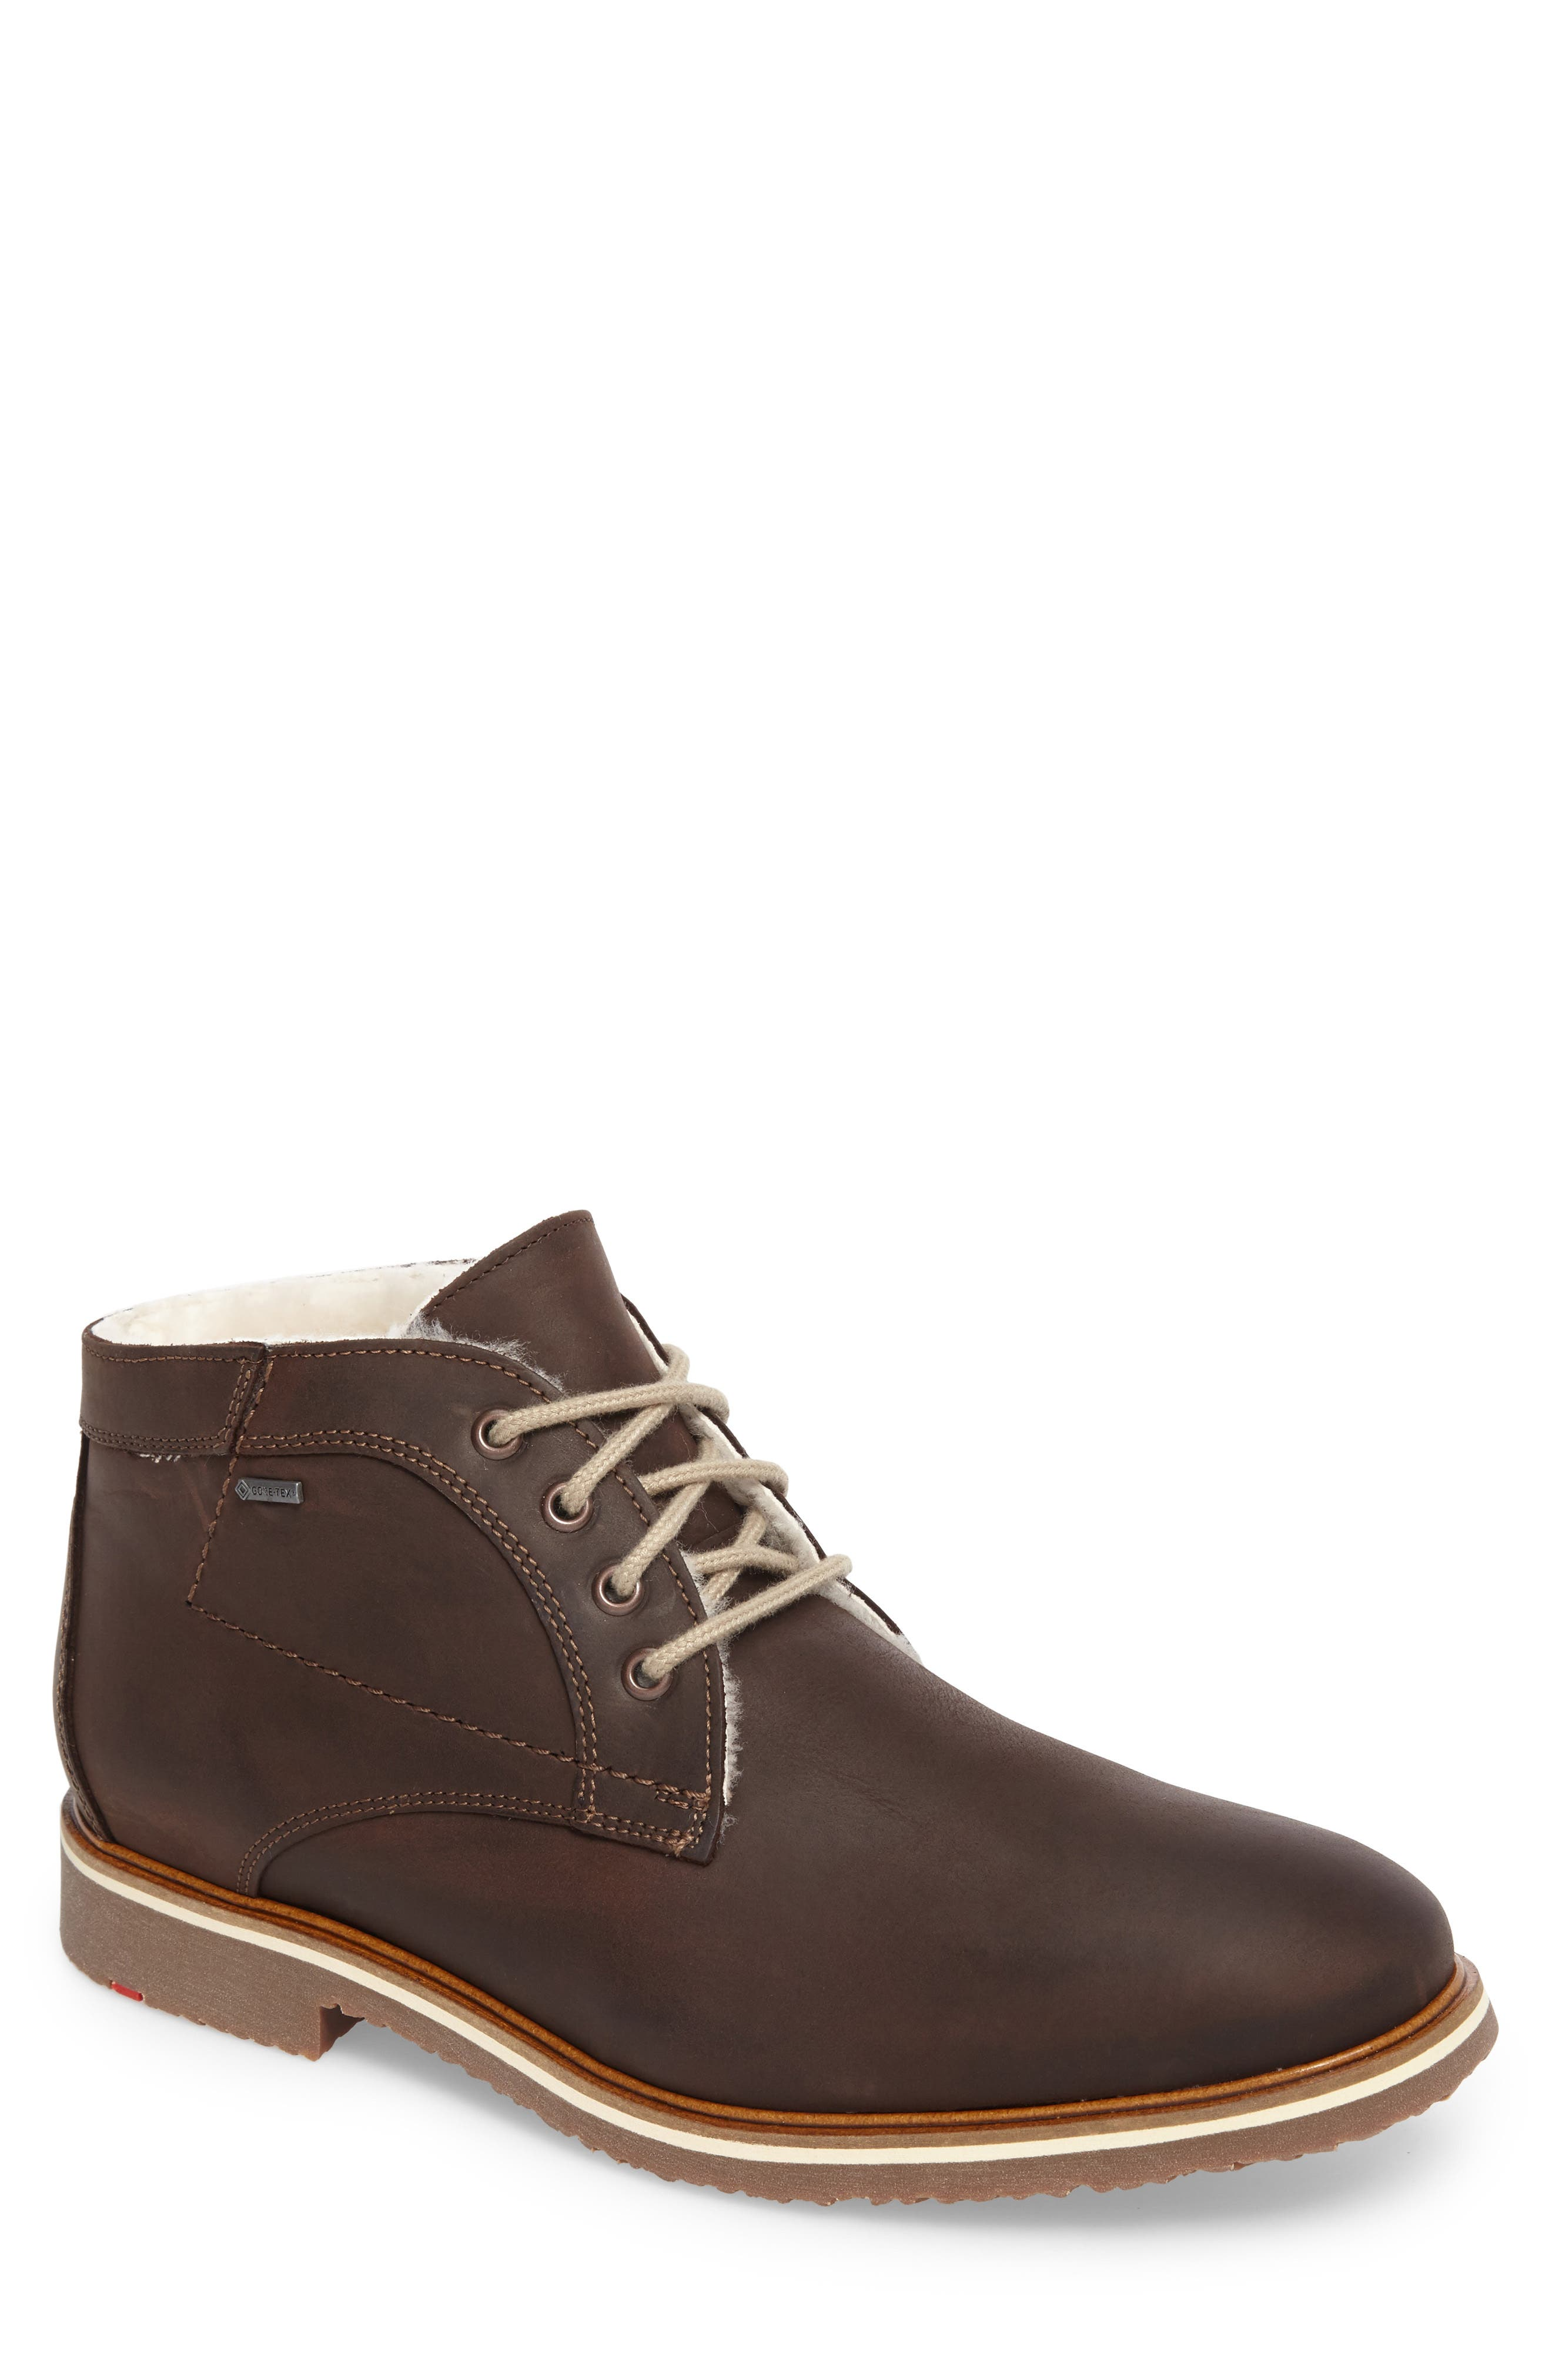 Lloyd Varus Waterproof Shearlng Lined Chukka Boot (Men)